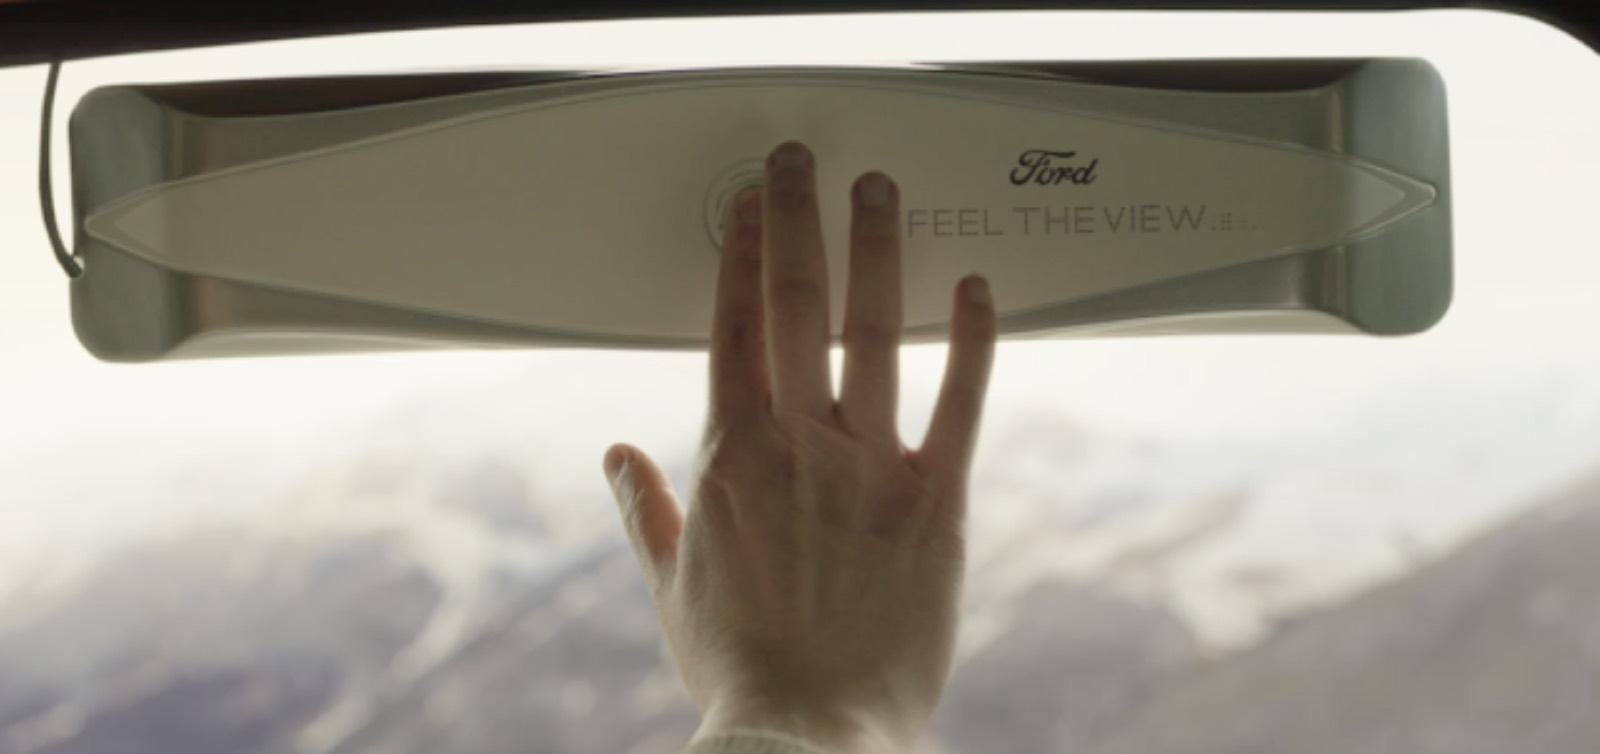 feel-the-view ford